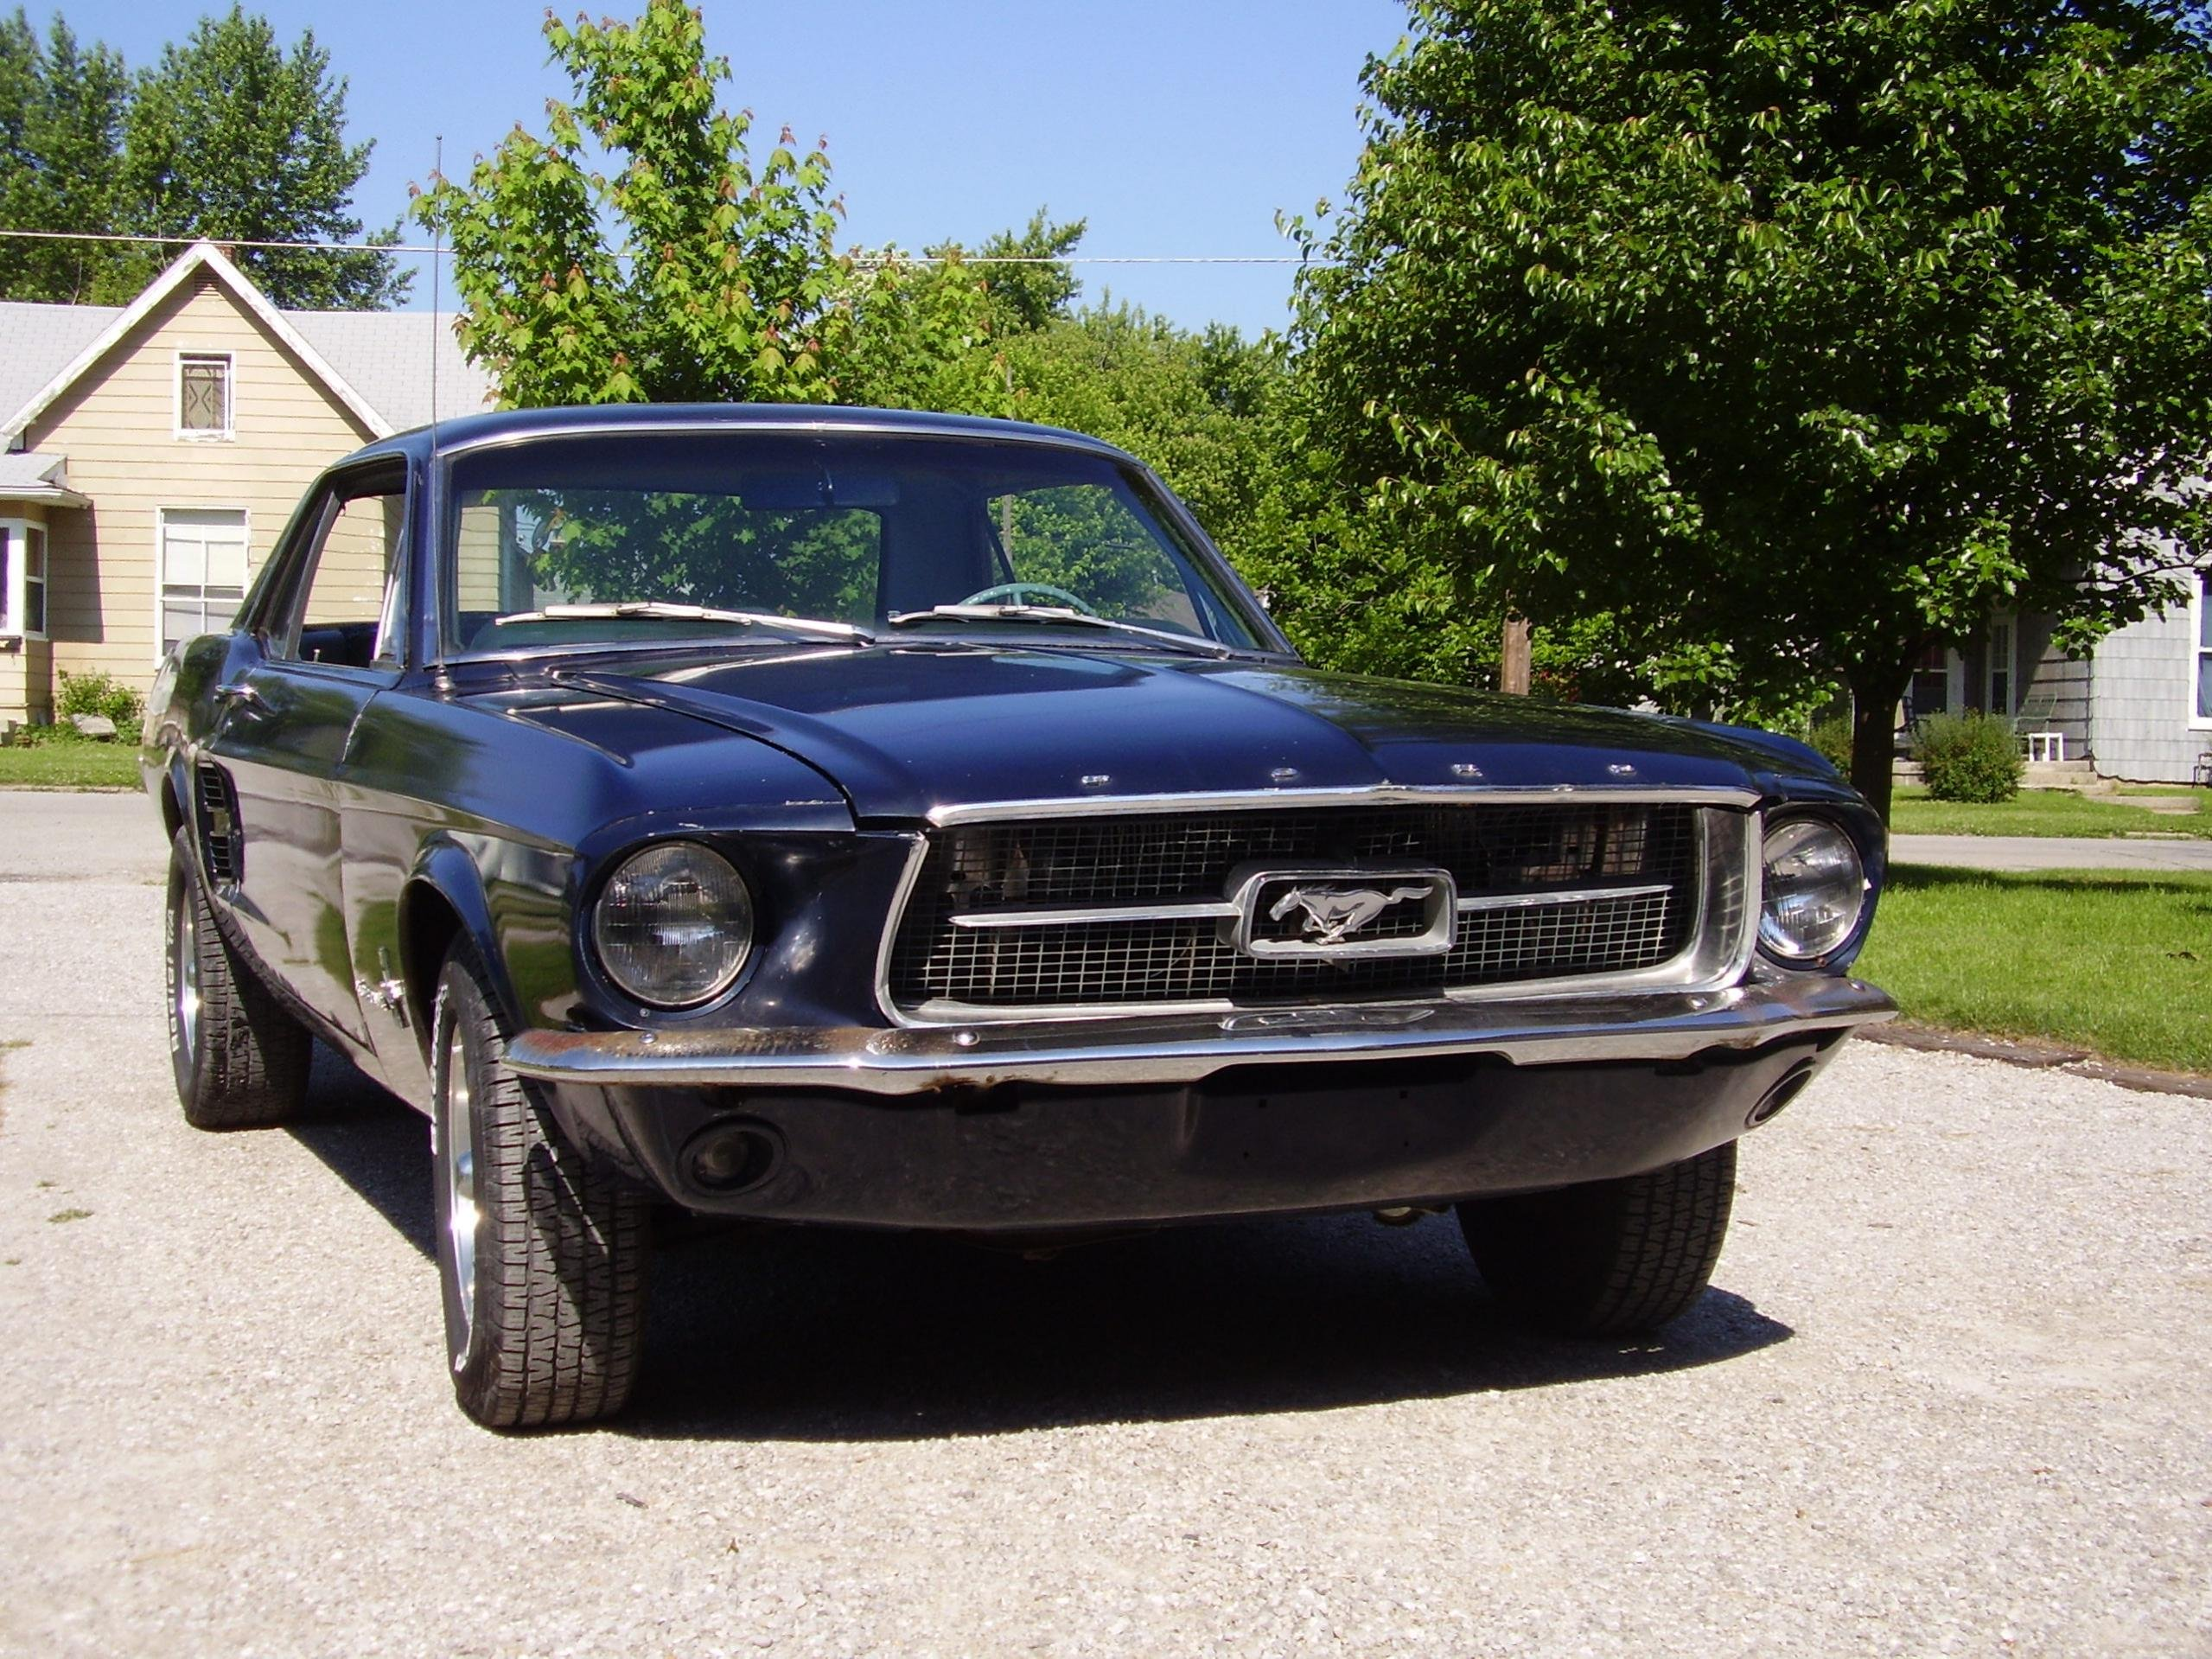 1967 Mustang Coupe - Ford